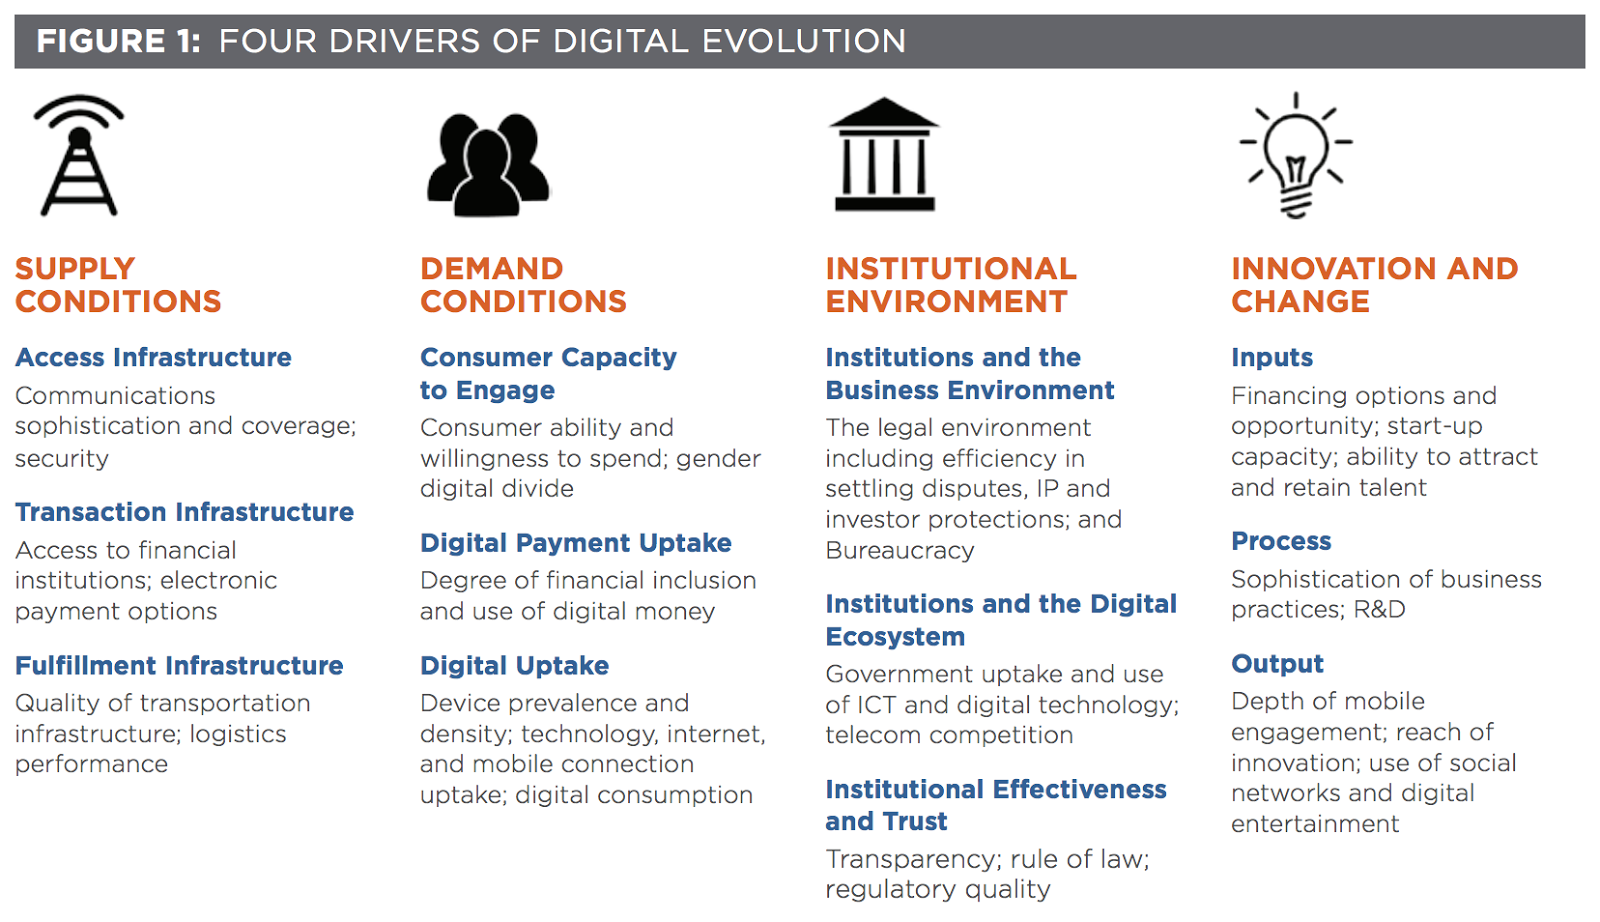 Technology Management Image: Digital Systems Will Drive Globalization & Redefine